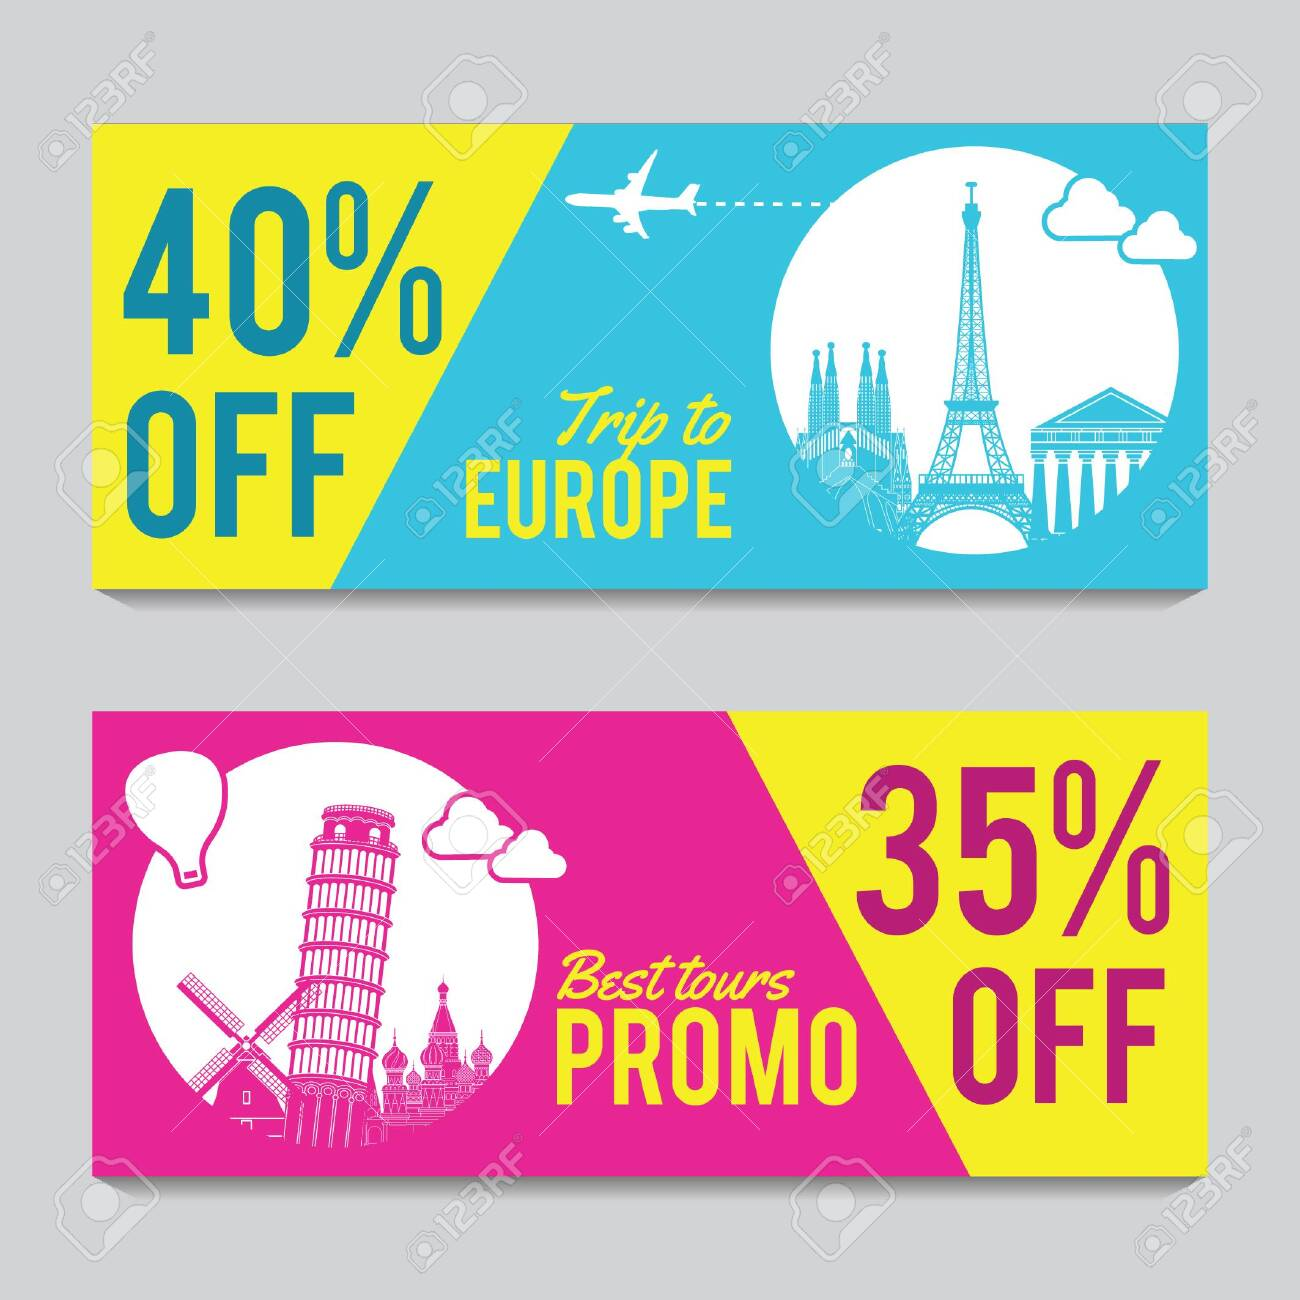 Bright and colorful promotion banner with pink and blue color for Europe travel,silhouette art design,vector illustration - 121721516